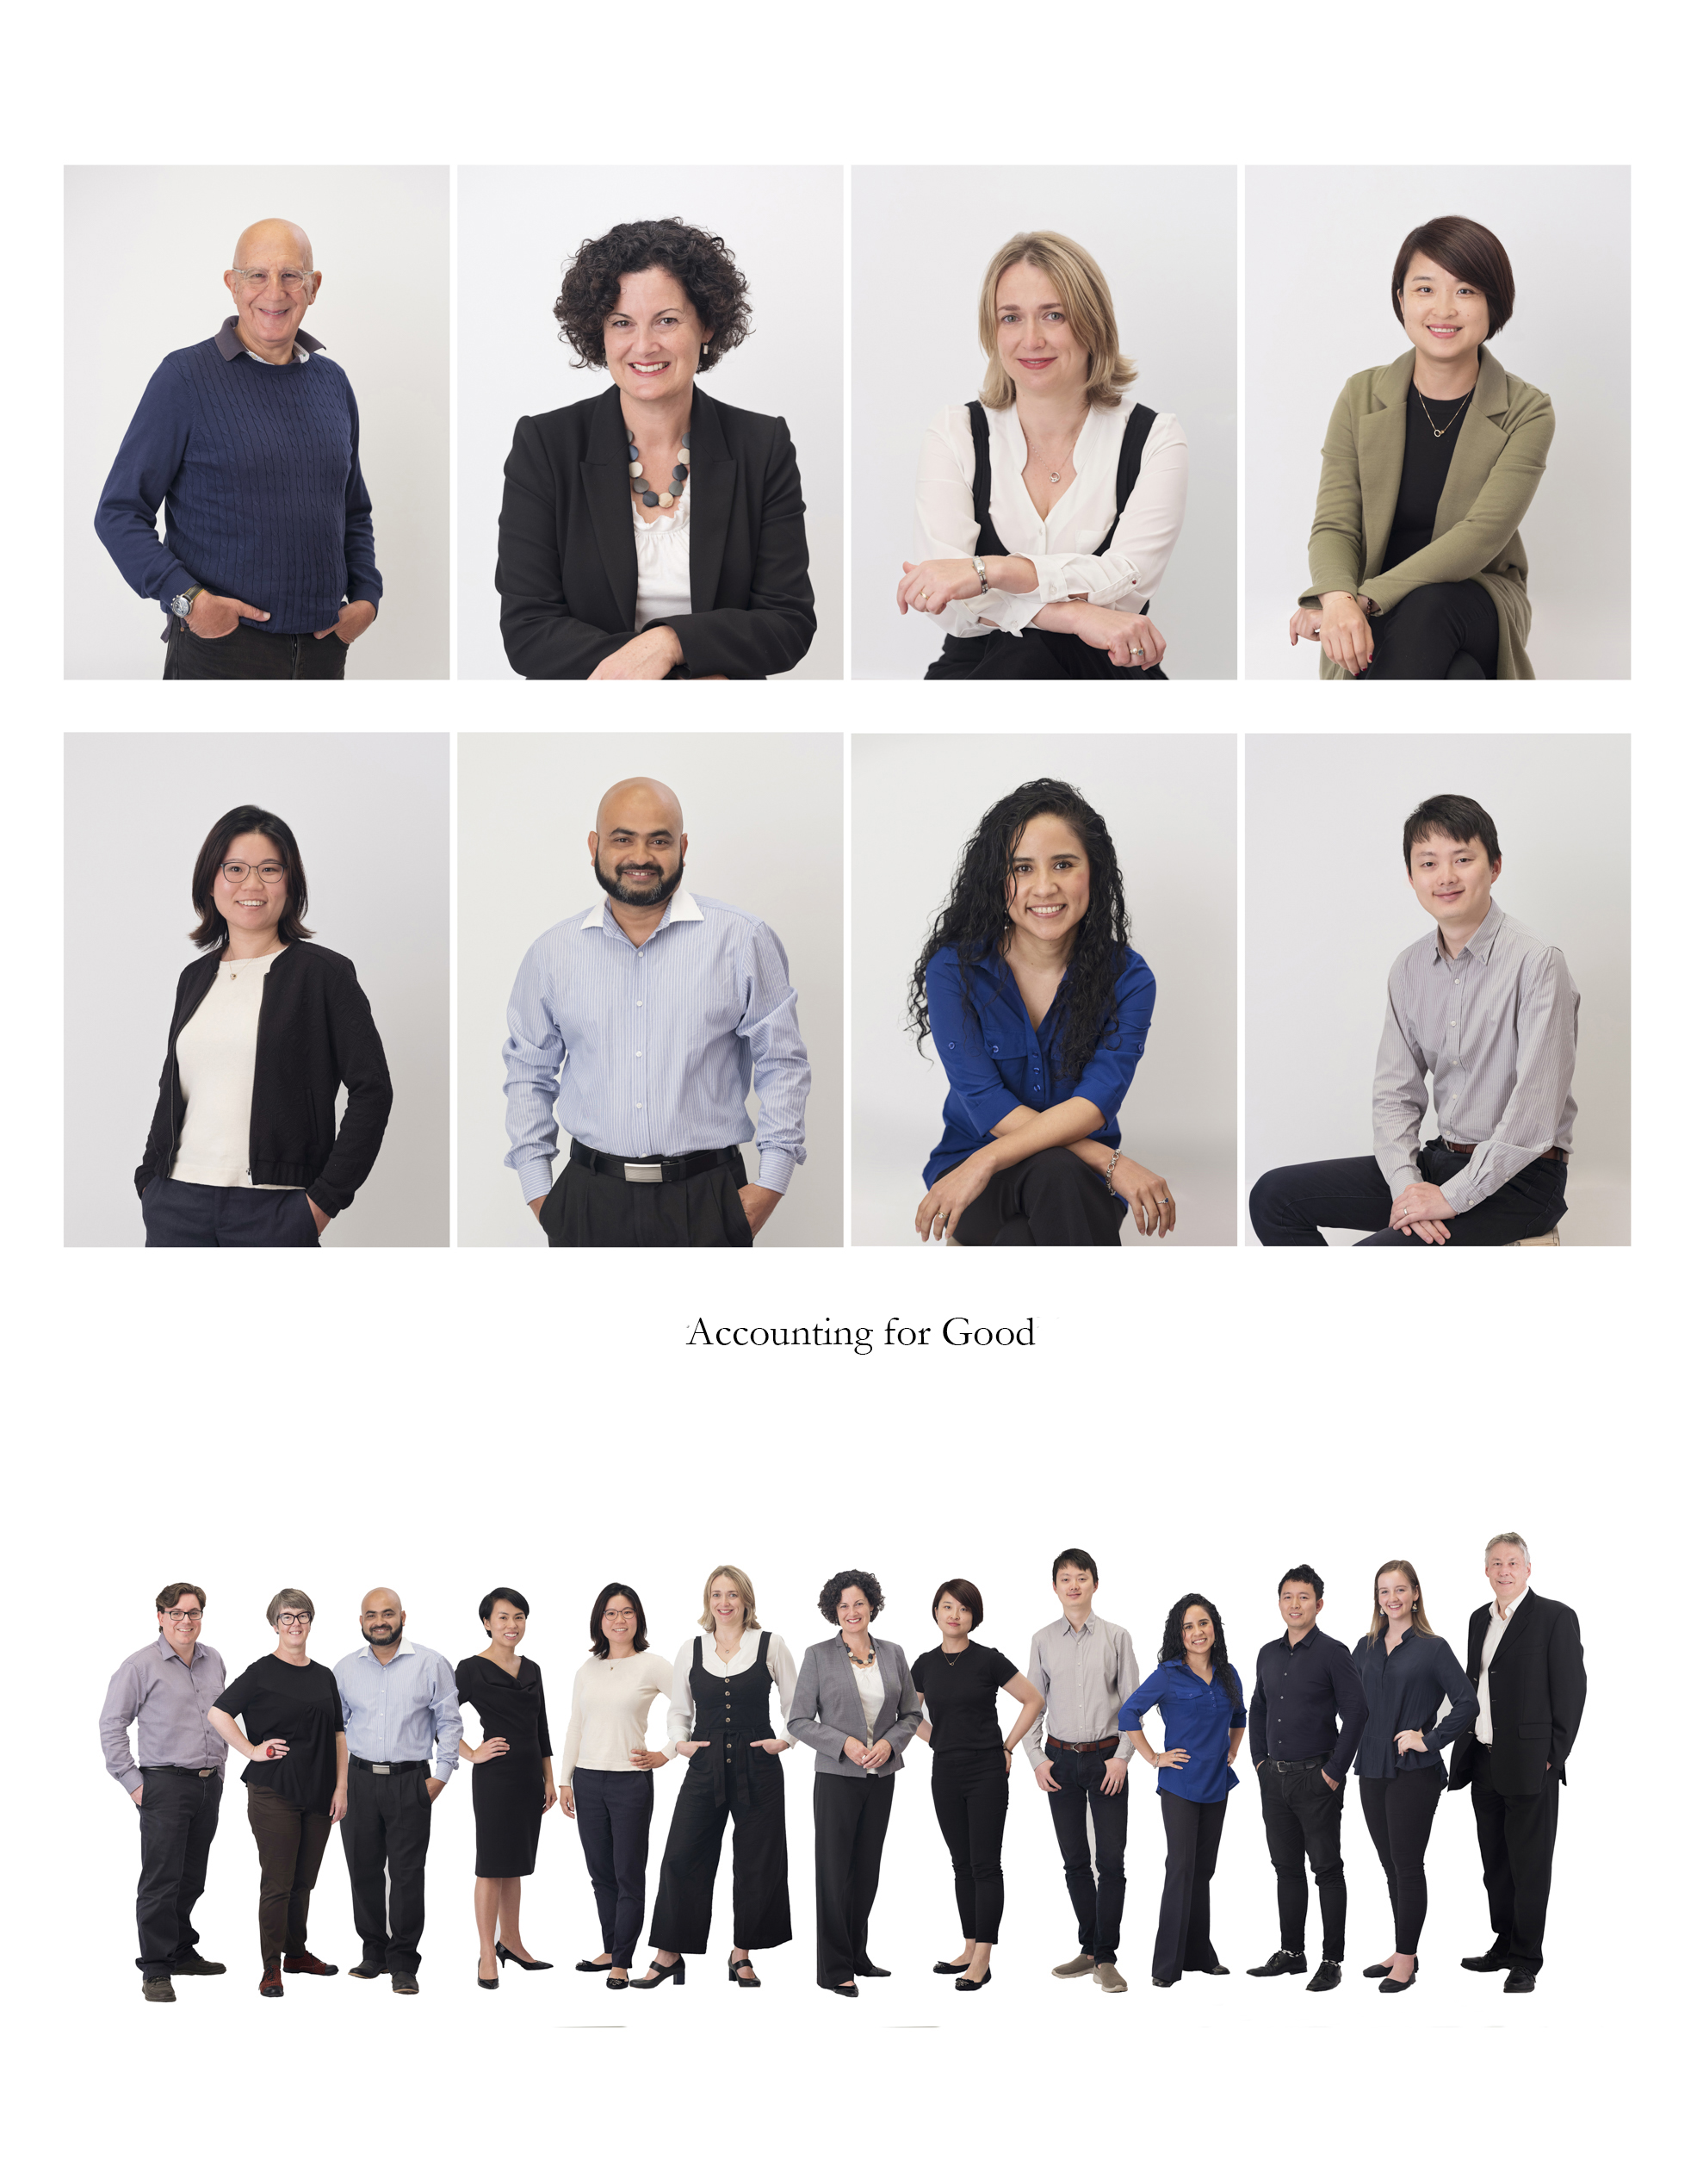 """Sydney based accounting firm """"Accounting for Good"""" needing headshot and team photos. To look friendly and approachable was the request."""